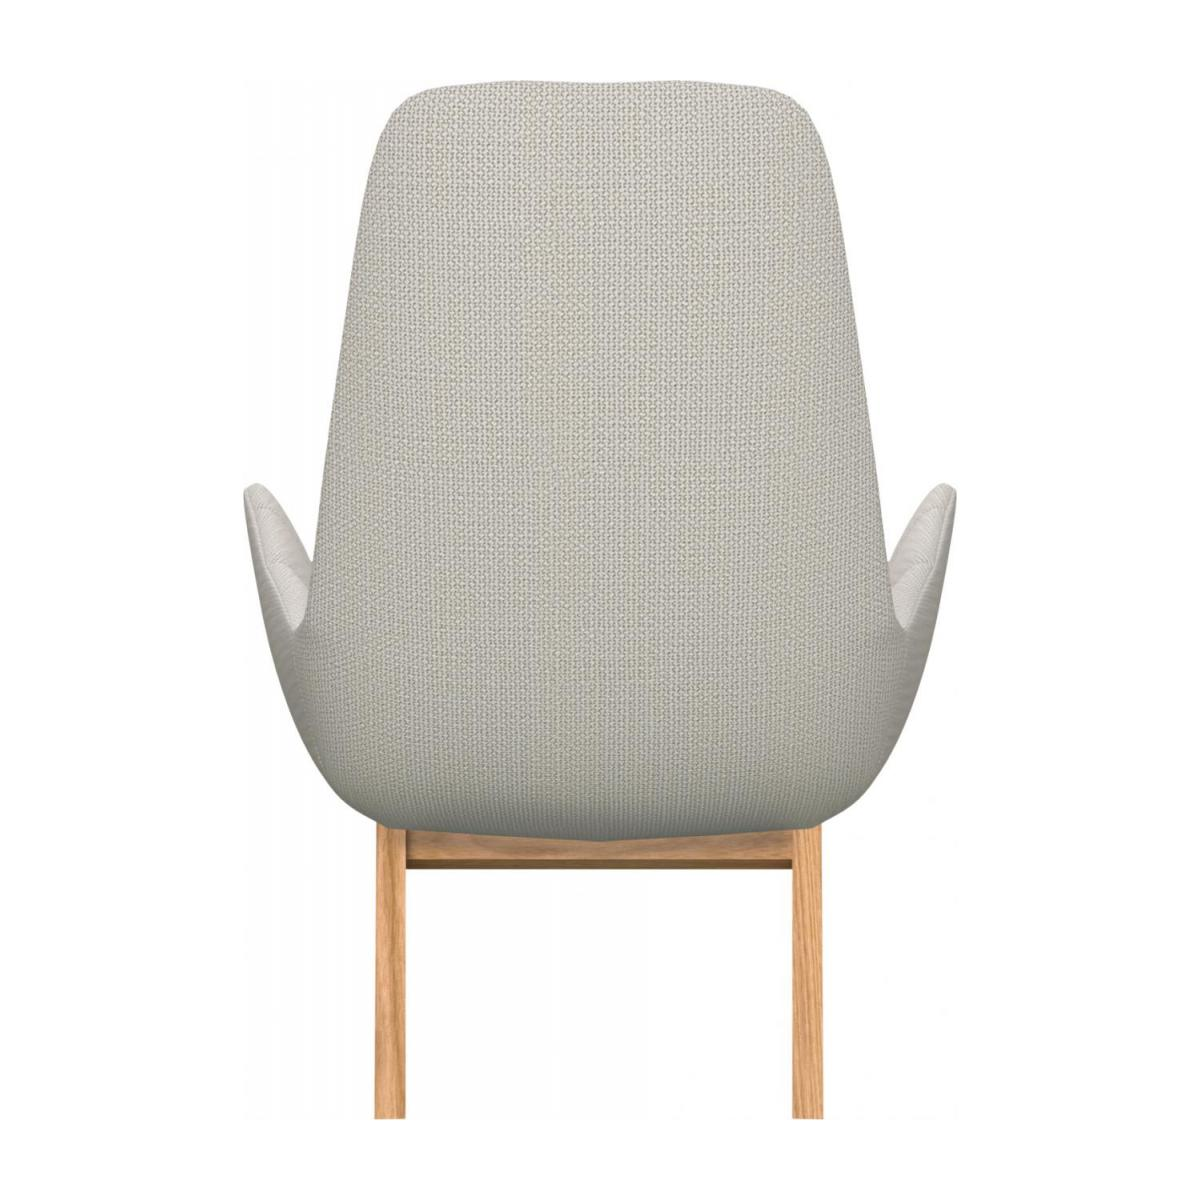 Armchair in Fasoli fabric, snow white with oak legs n°3